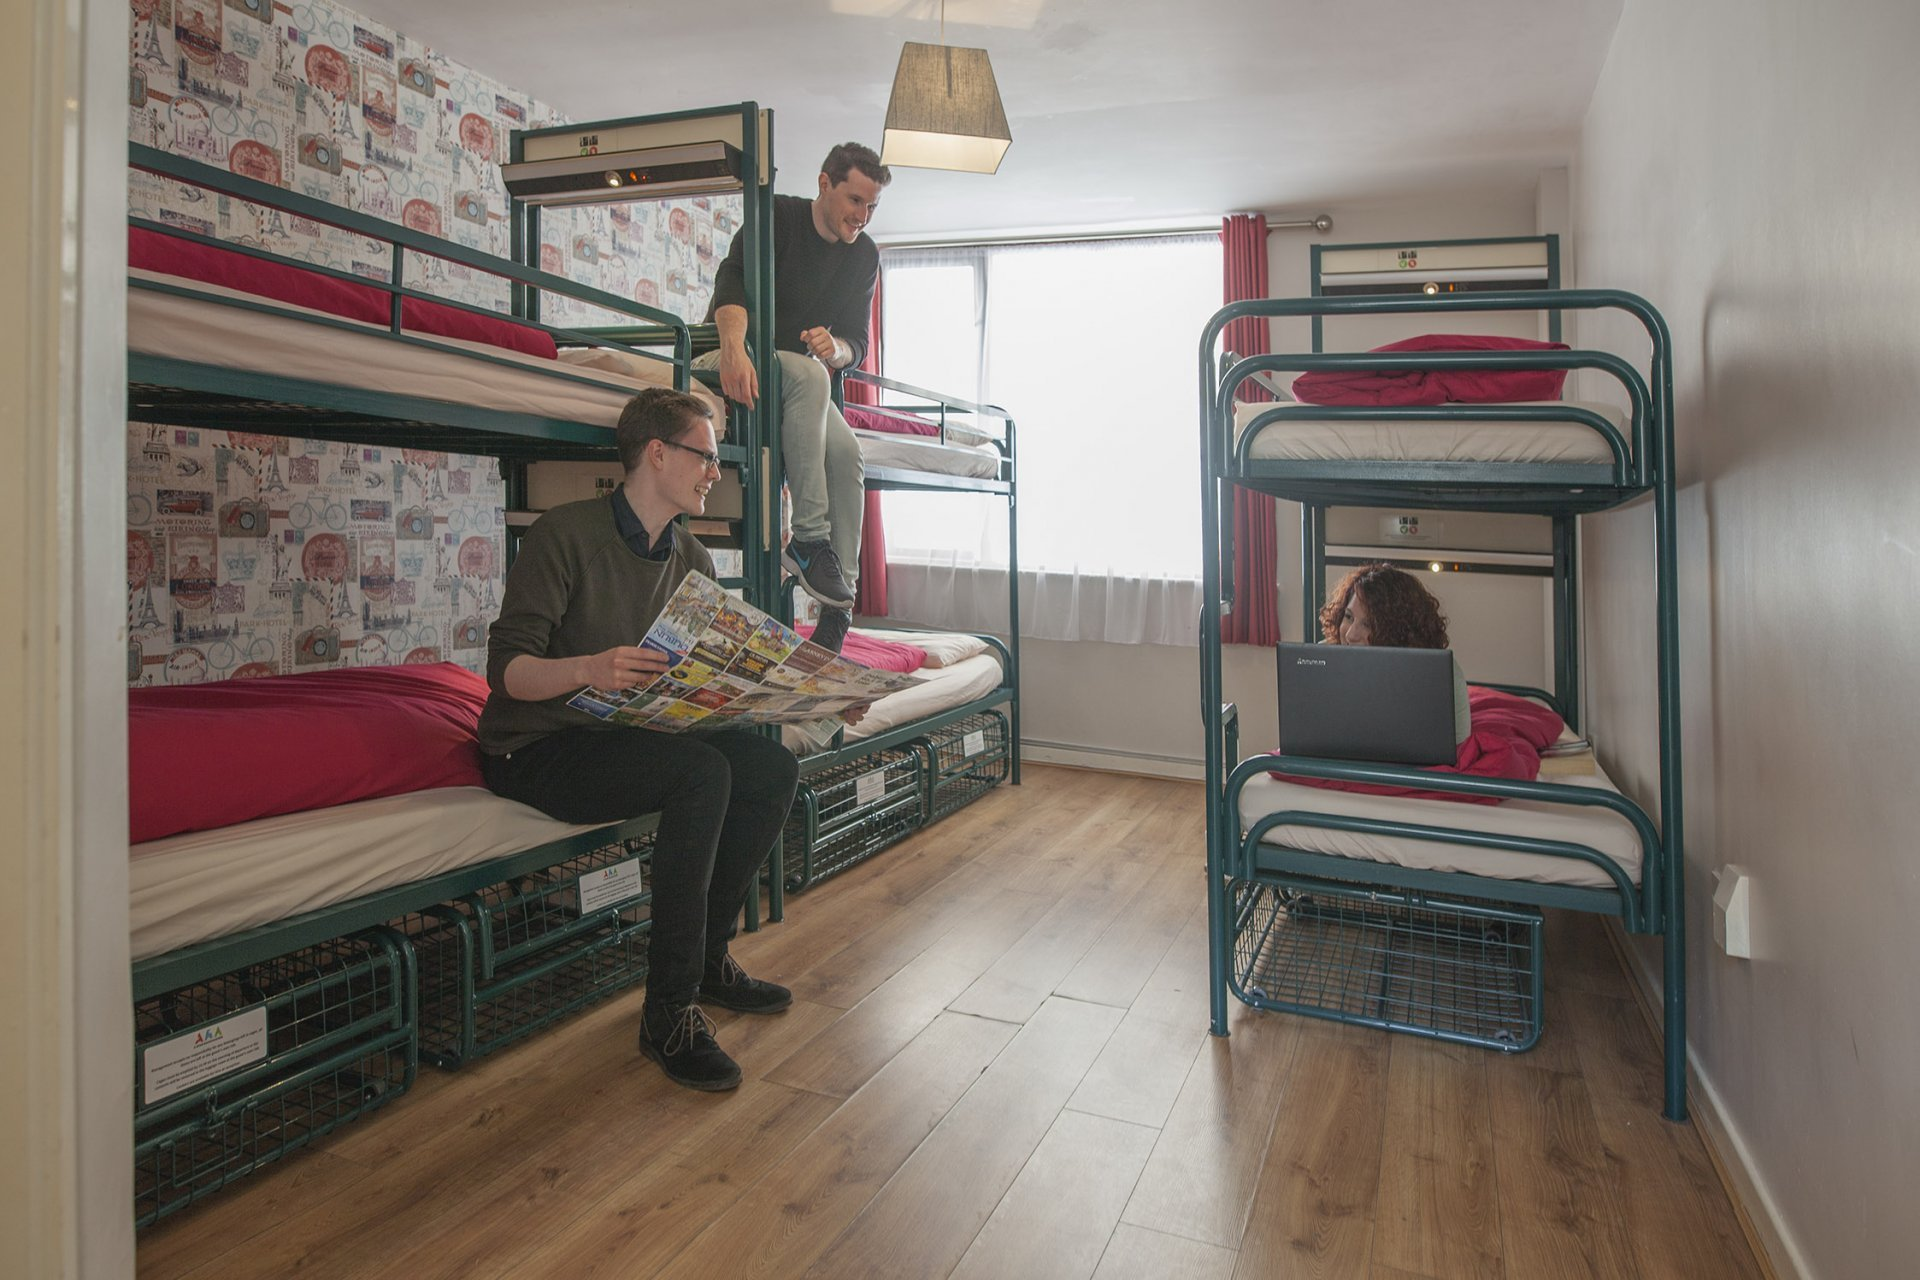 Three Backpackers Planning Day Trip on Bunk Beds in Hostel's Room